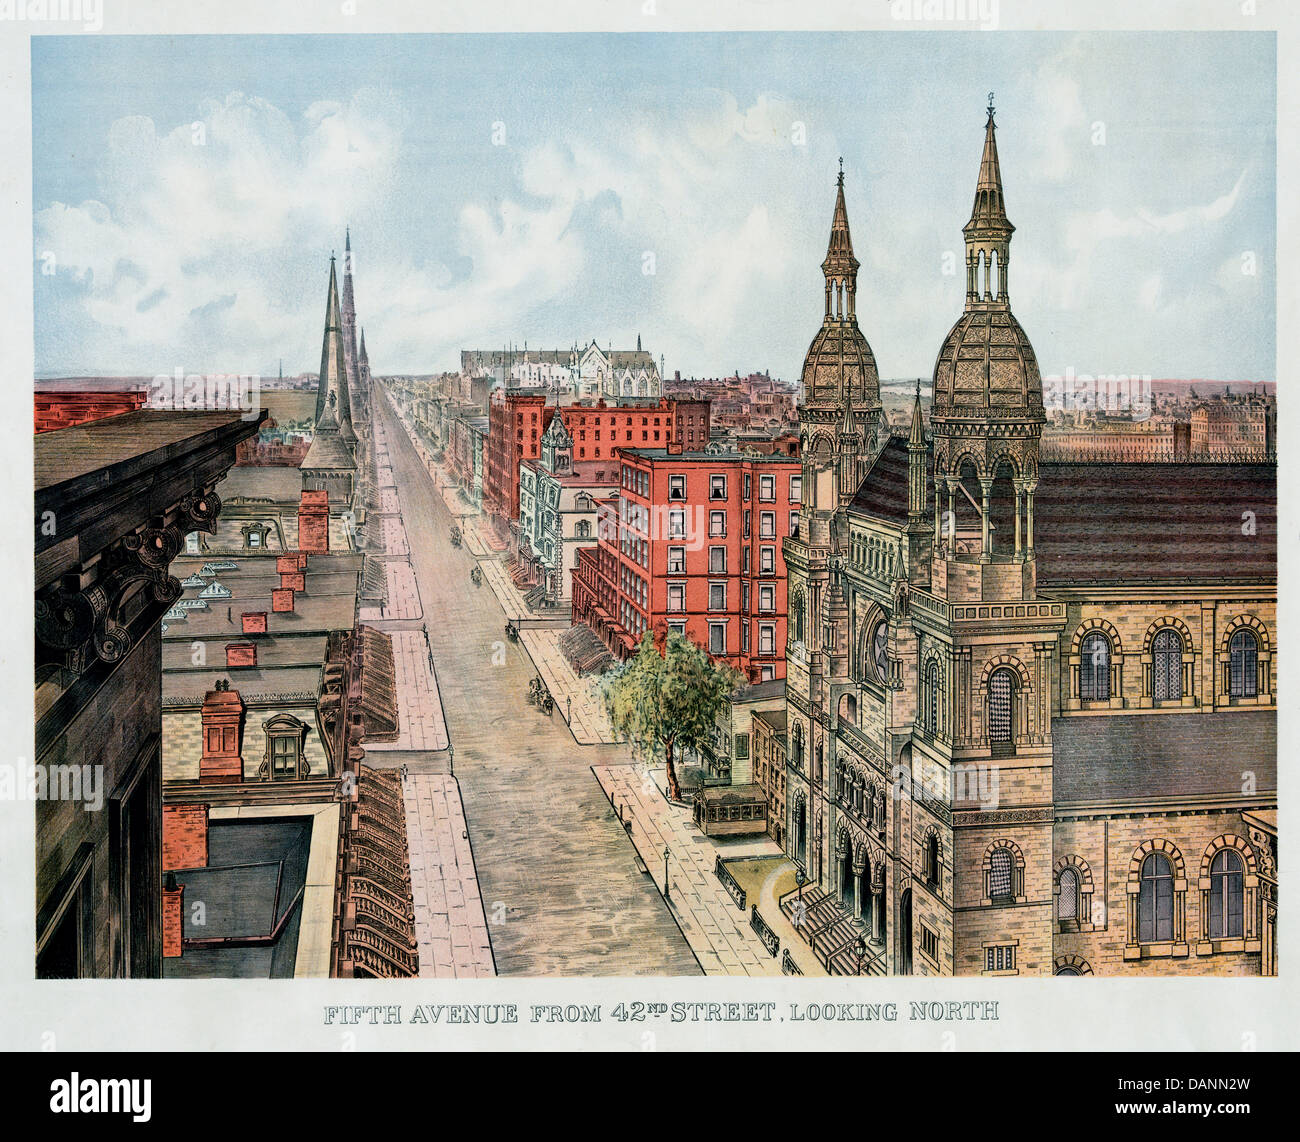 Fifth avenue from 42nd street, looking north, circa 1904 - Stock Image